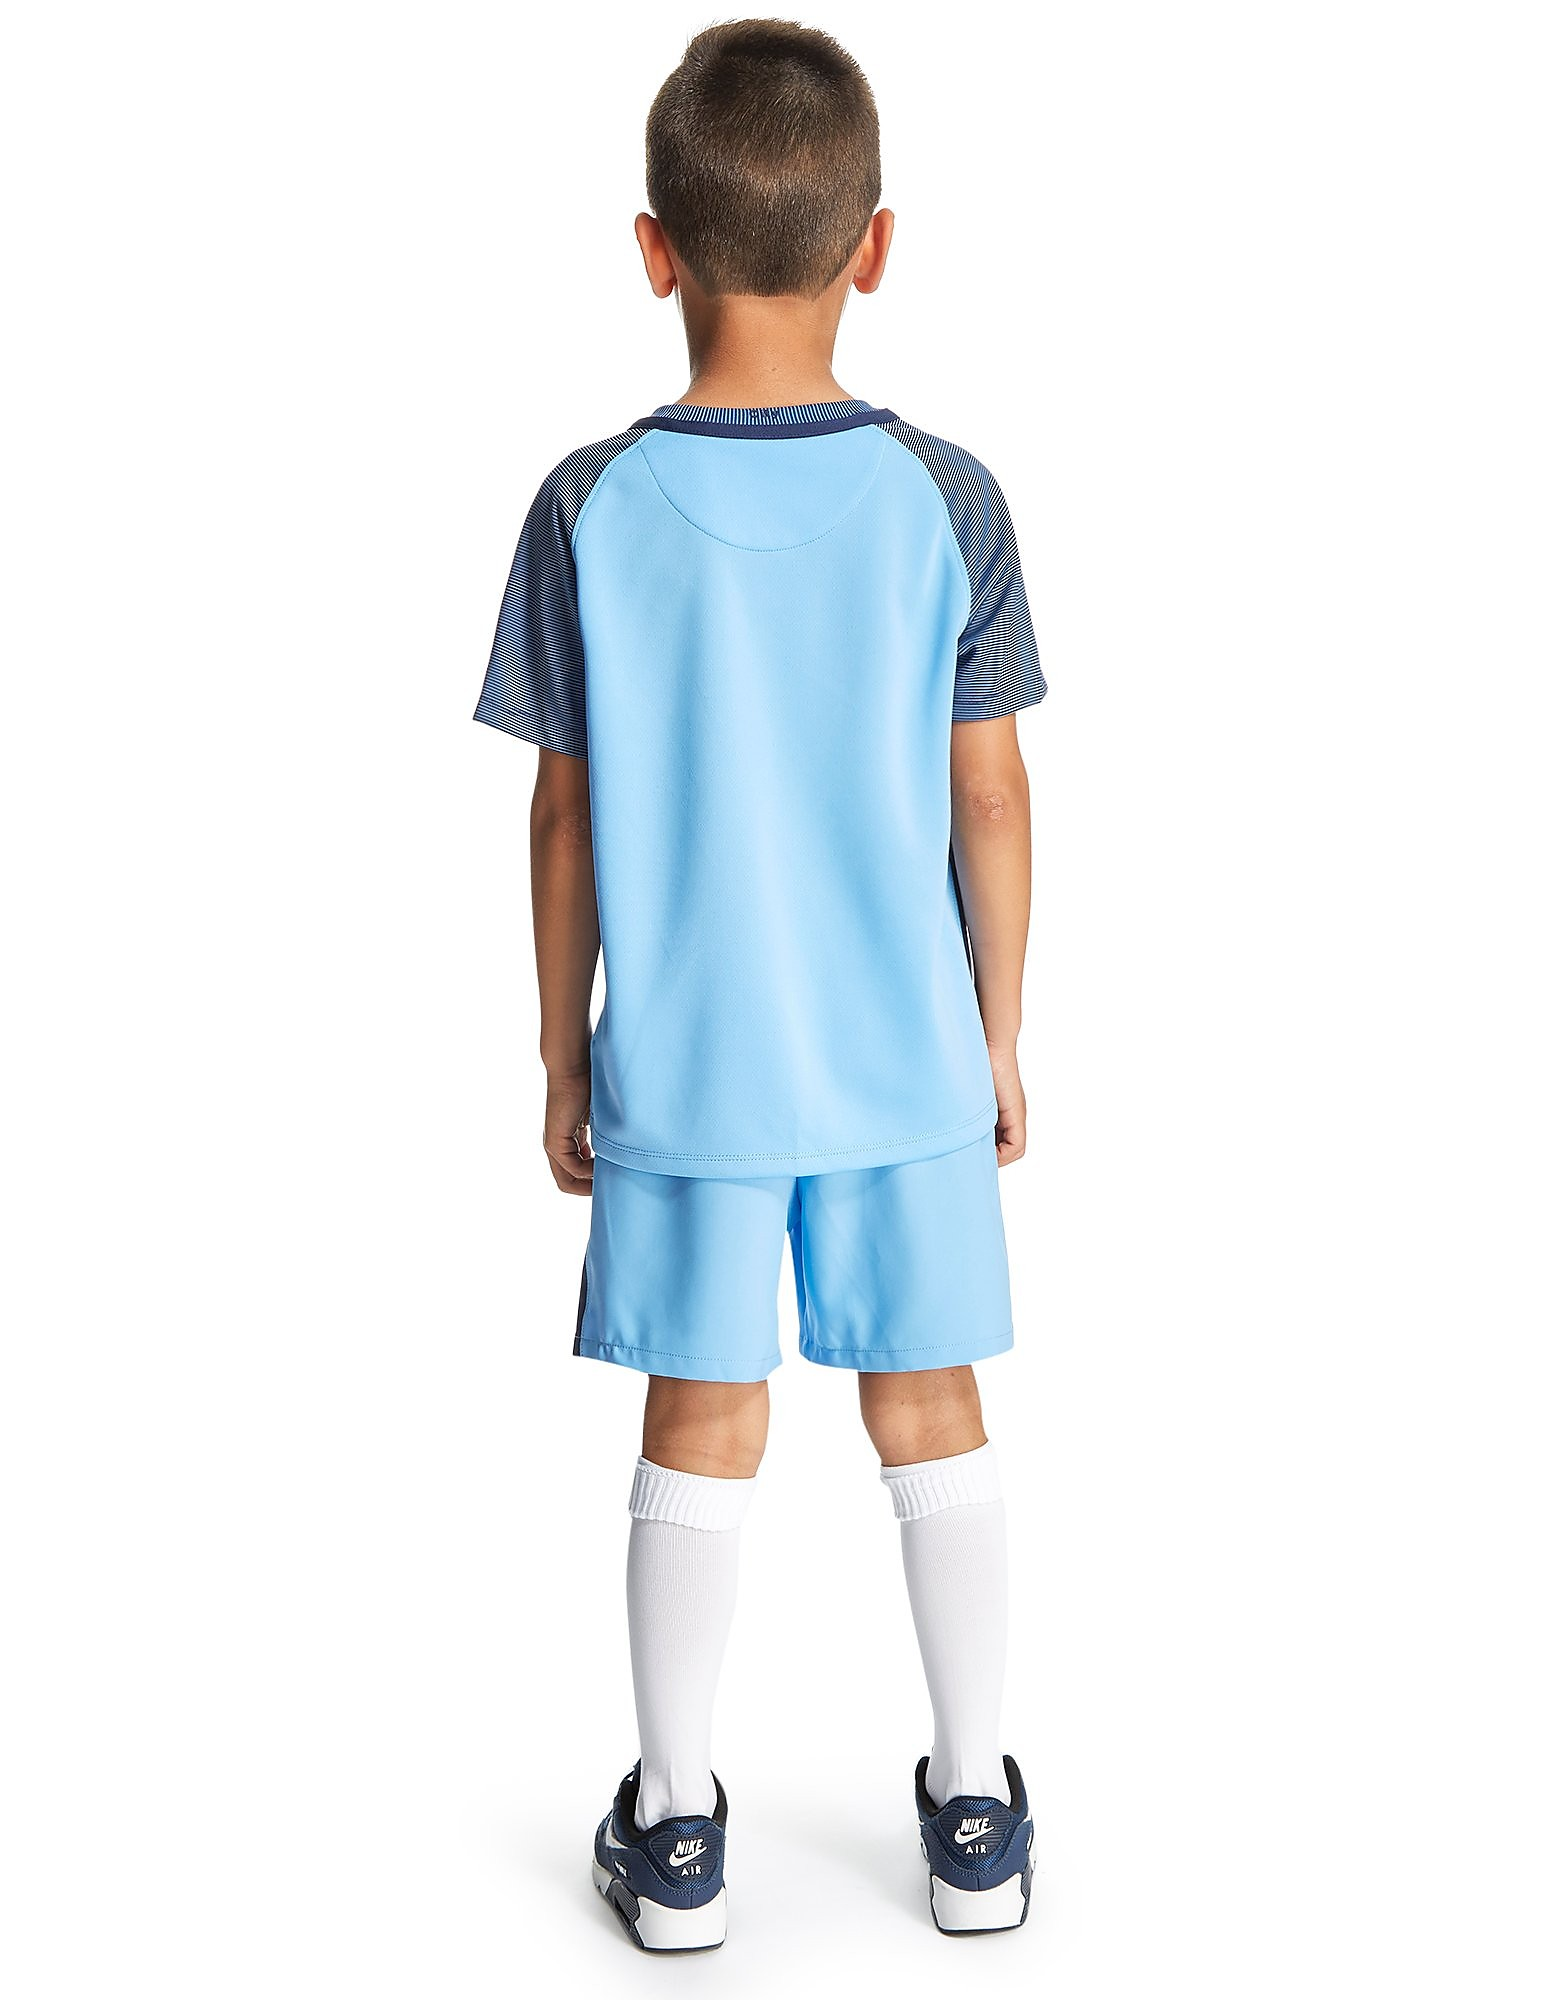 Nike Manchester City 2016/17 Home Kit Children